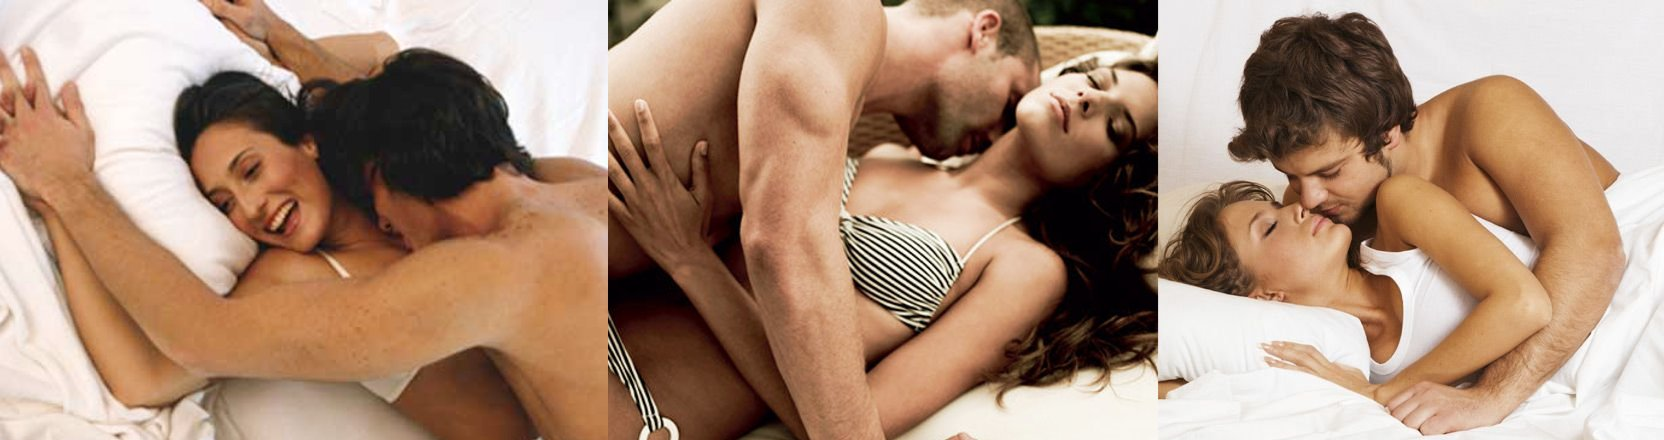 3 Pleasure Positions For Your Lazy Day